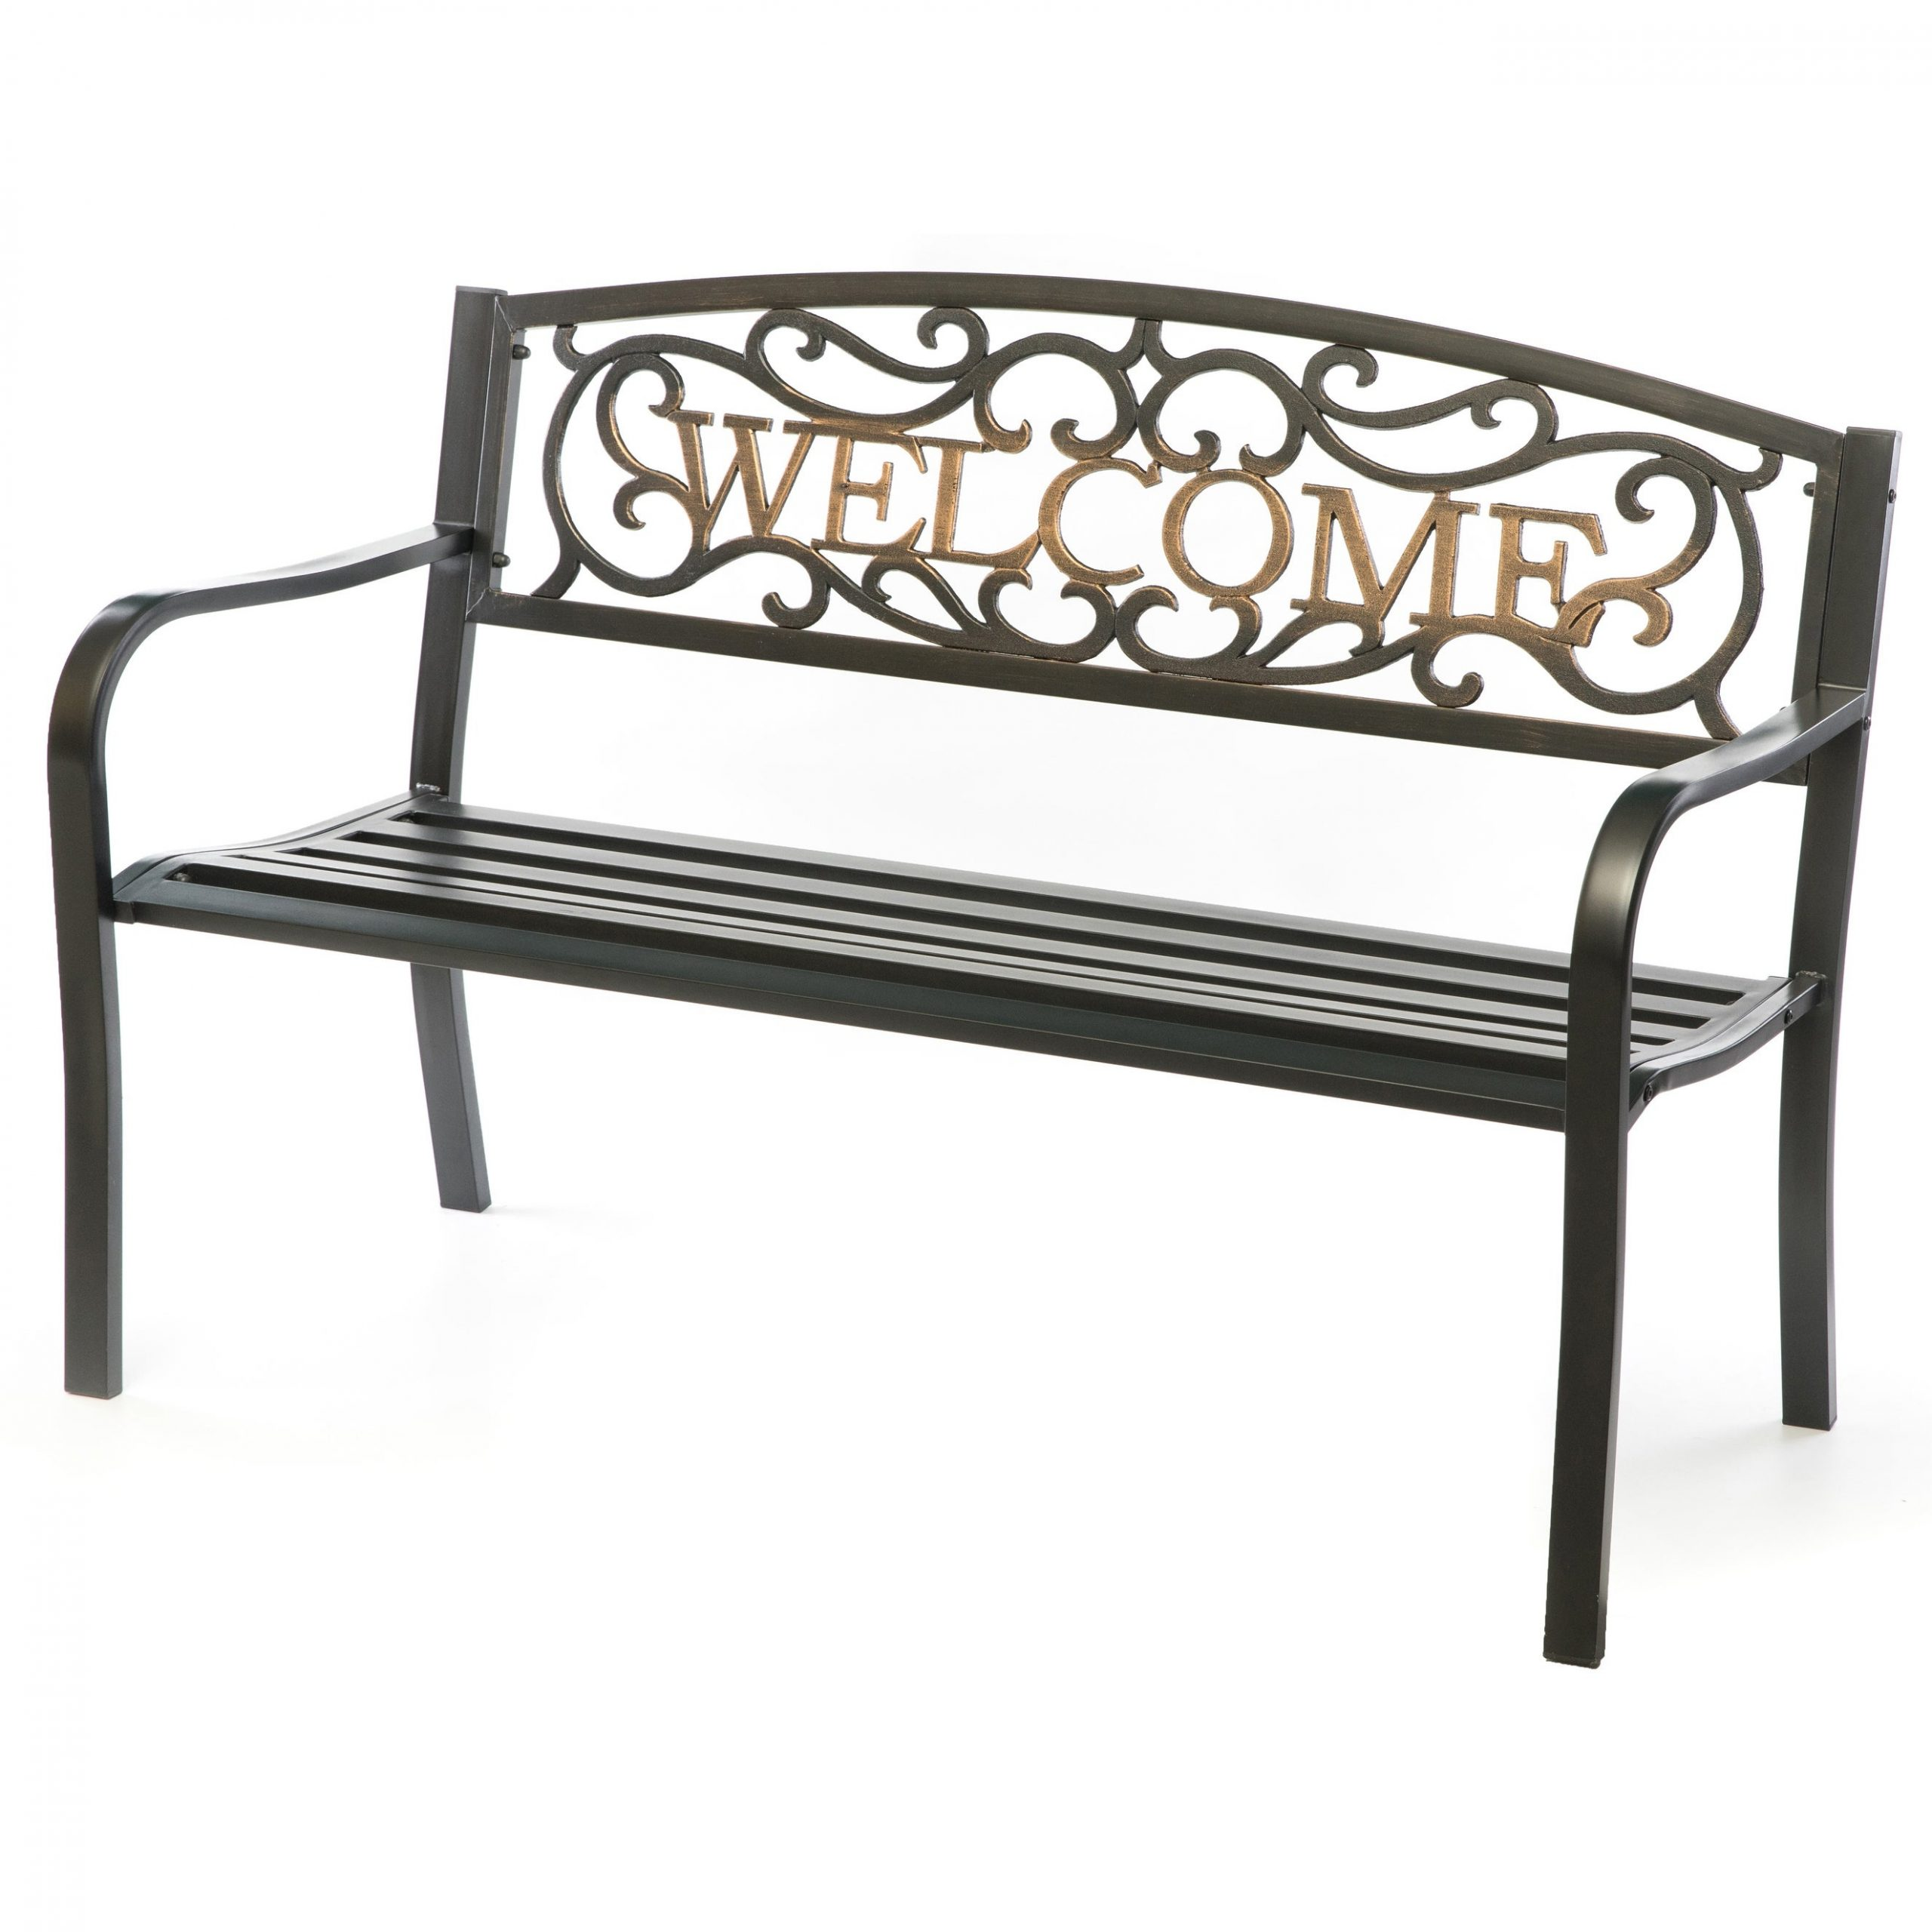 Steel Outdoor Patio Garden Park Bench With Cast Iron Welcome Backrest With Celtic Knot Iron Garden Benches (Photo 11 of 25)